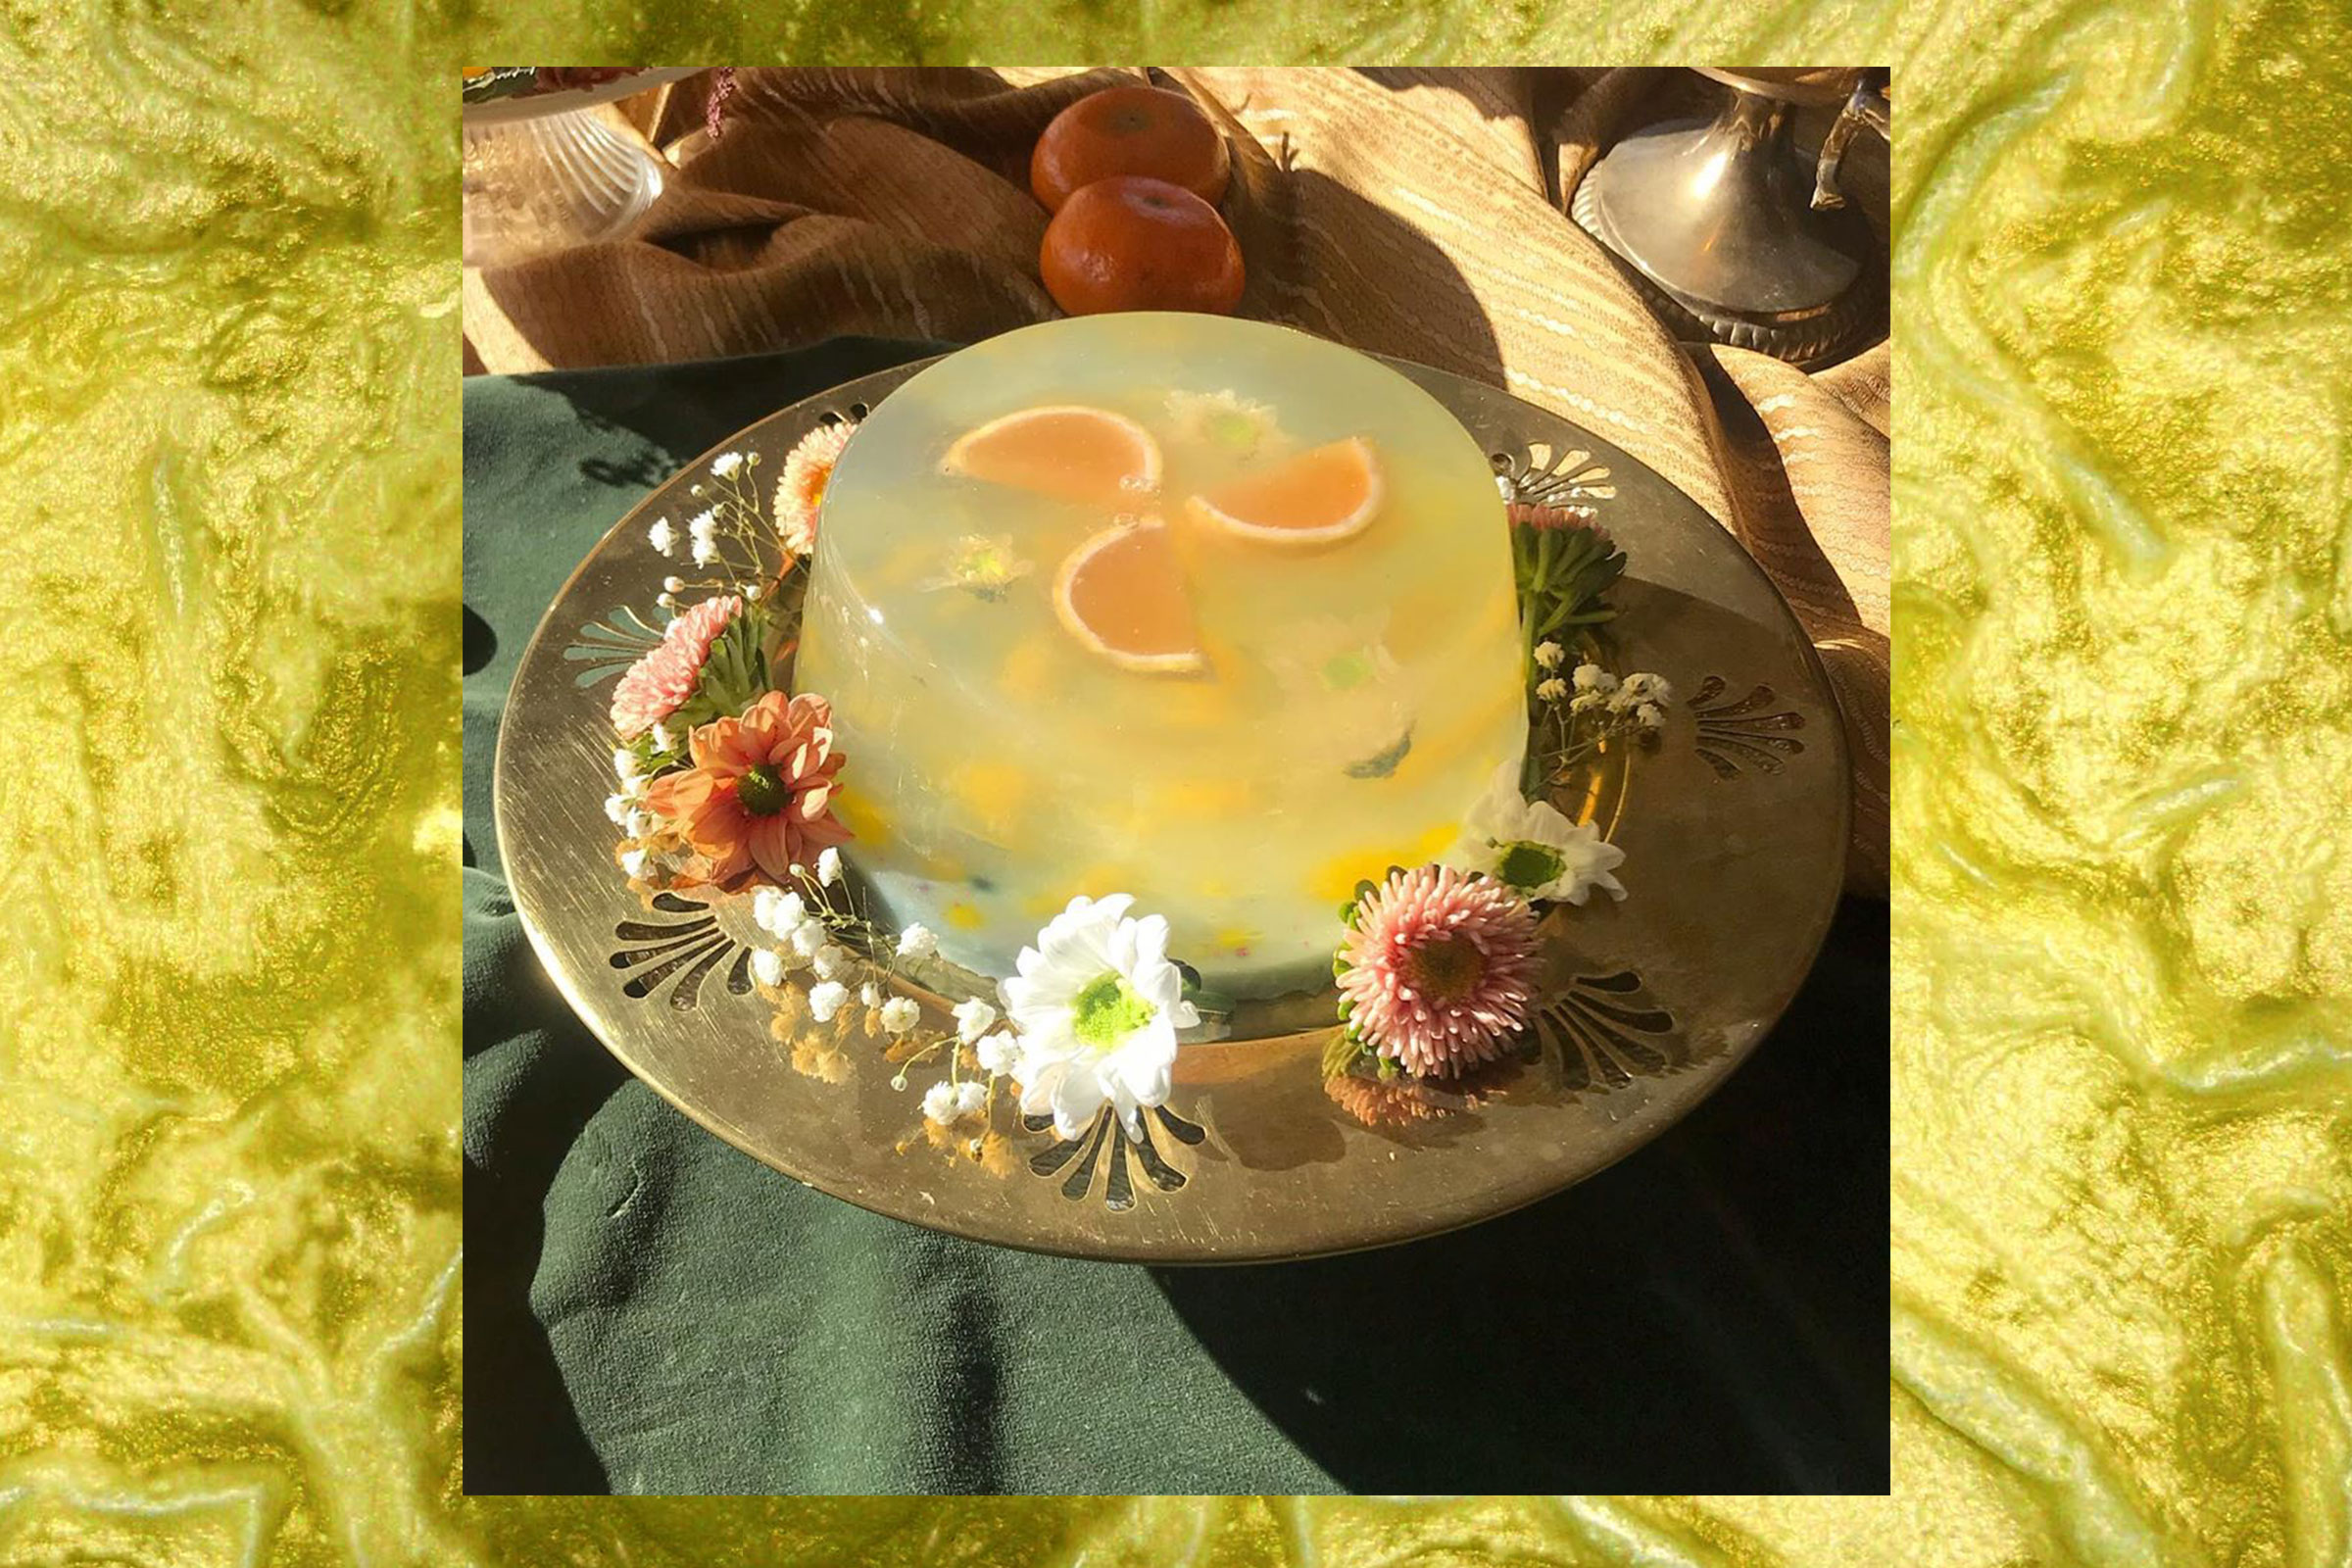 One of Sharona Franklin's edible jelly sculptures. Slices of citrus fruit are visible near the top of the jelly, and the jelly itself is surrounded by an assortment of flowers.